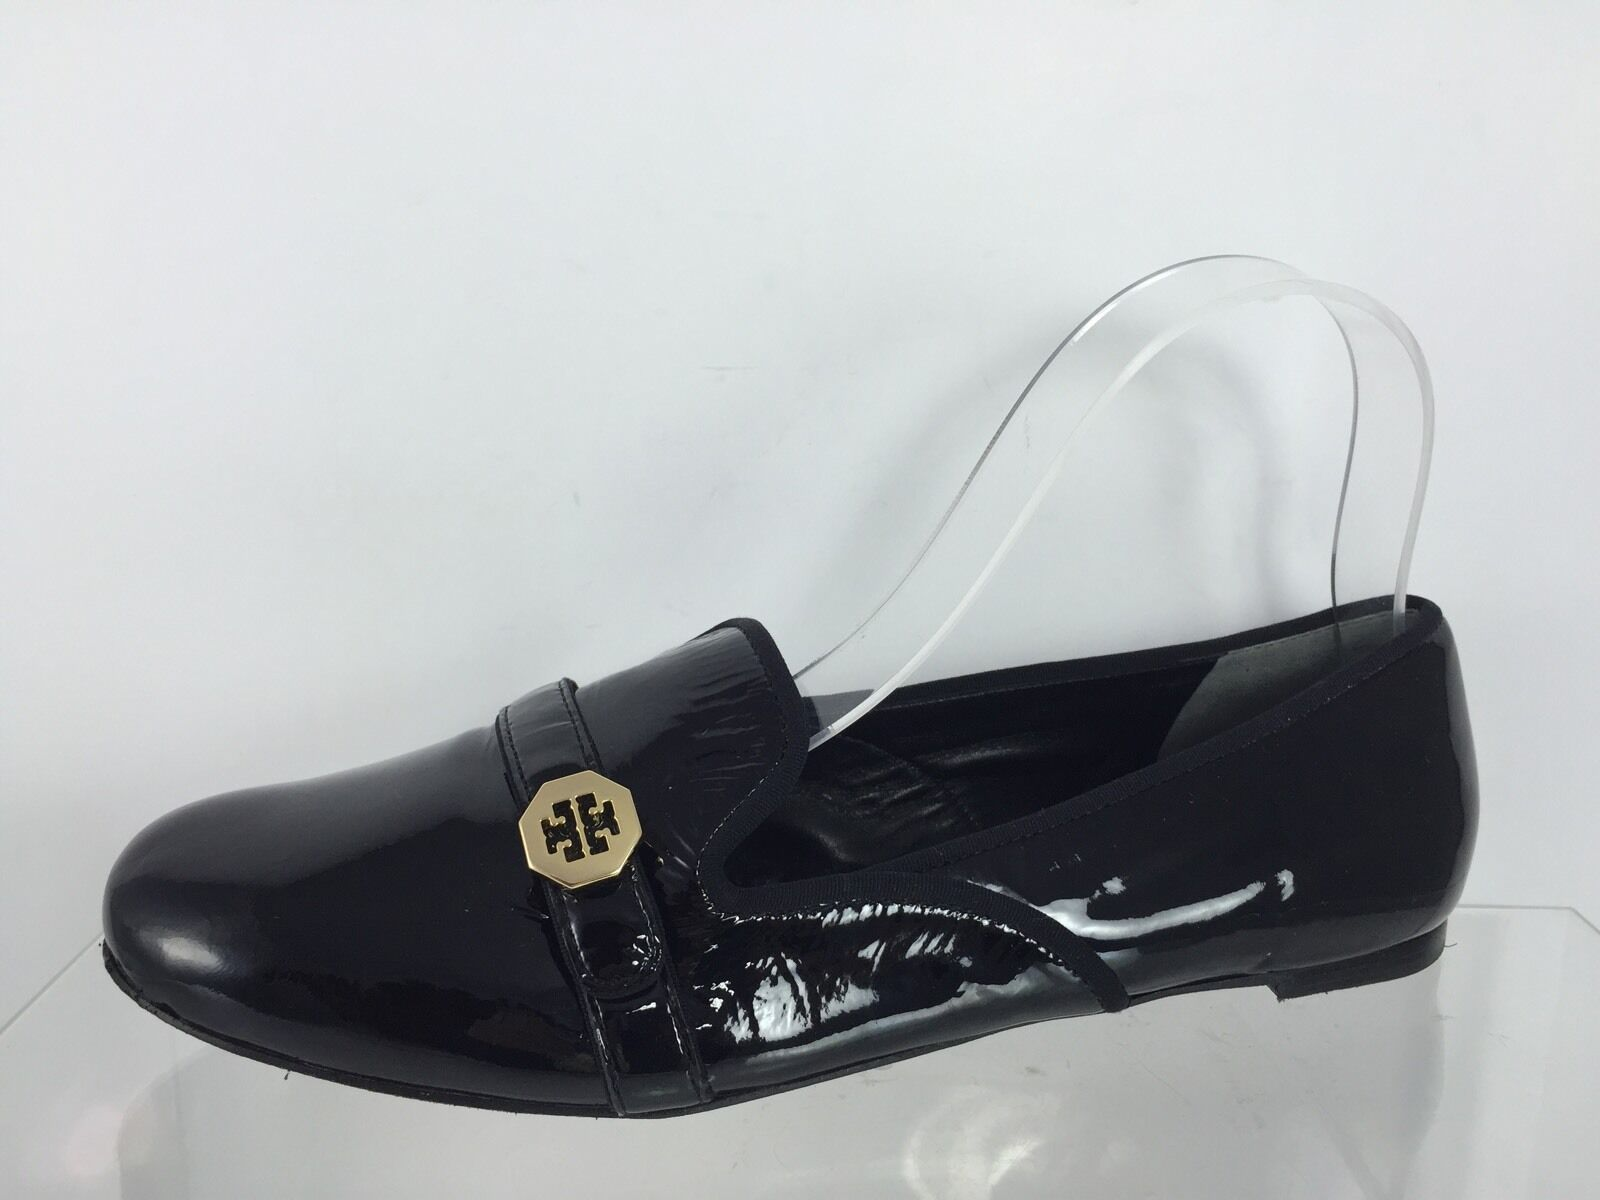 Tory Burch Womens Black Leather Flats 8.5 M